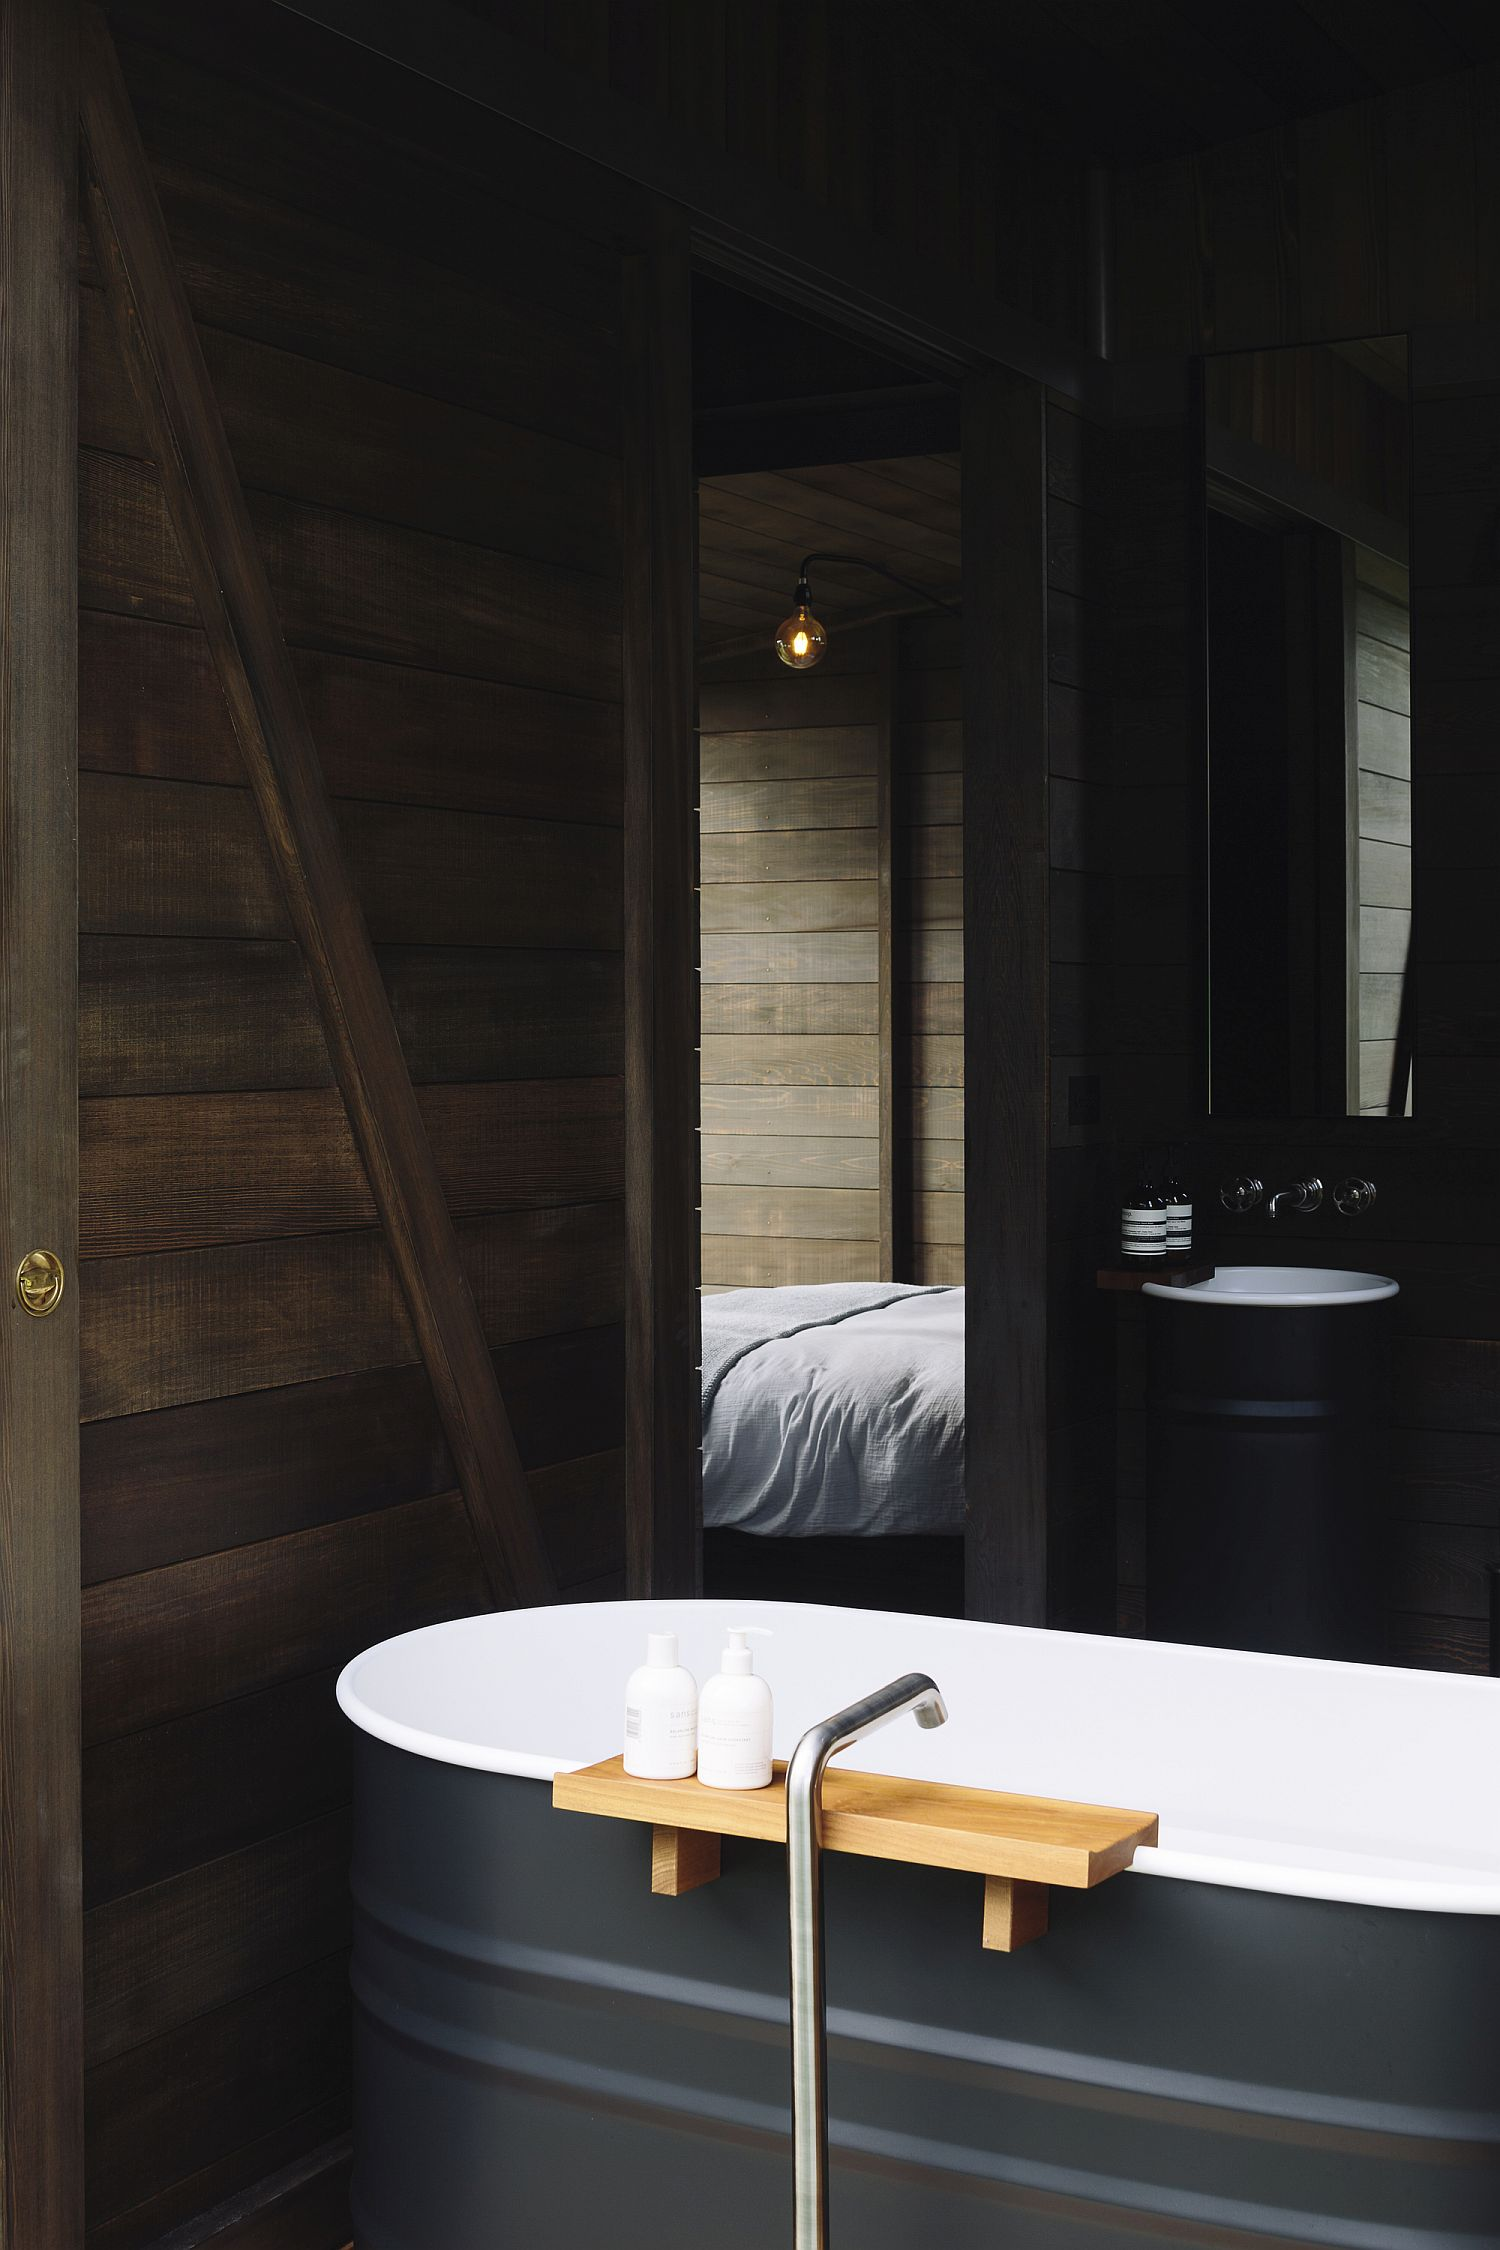 Smart bathtub offers a cool relaxation spot inside the cabin